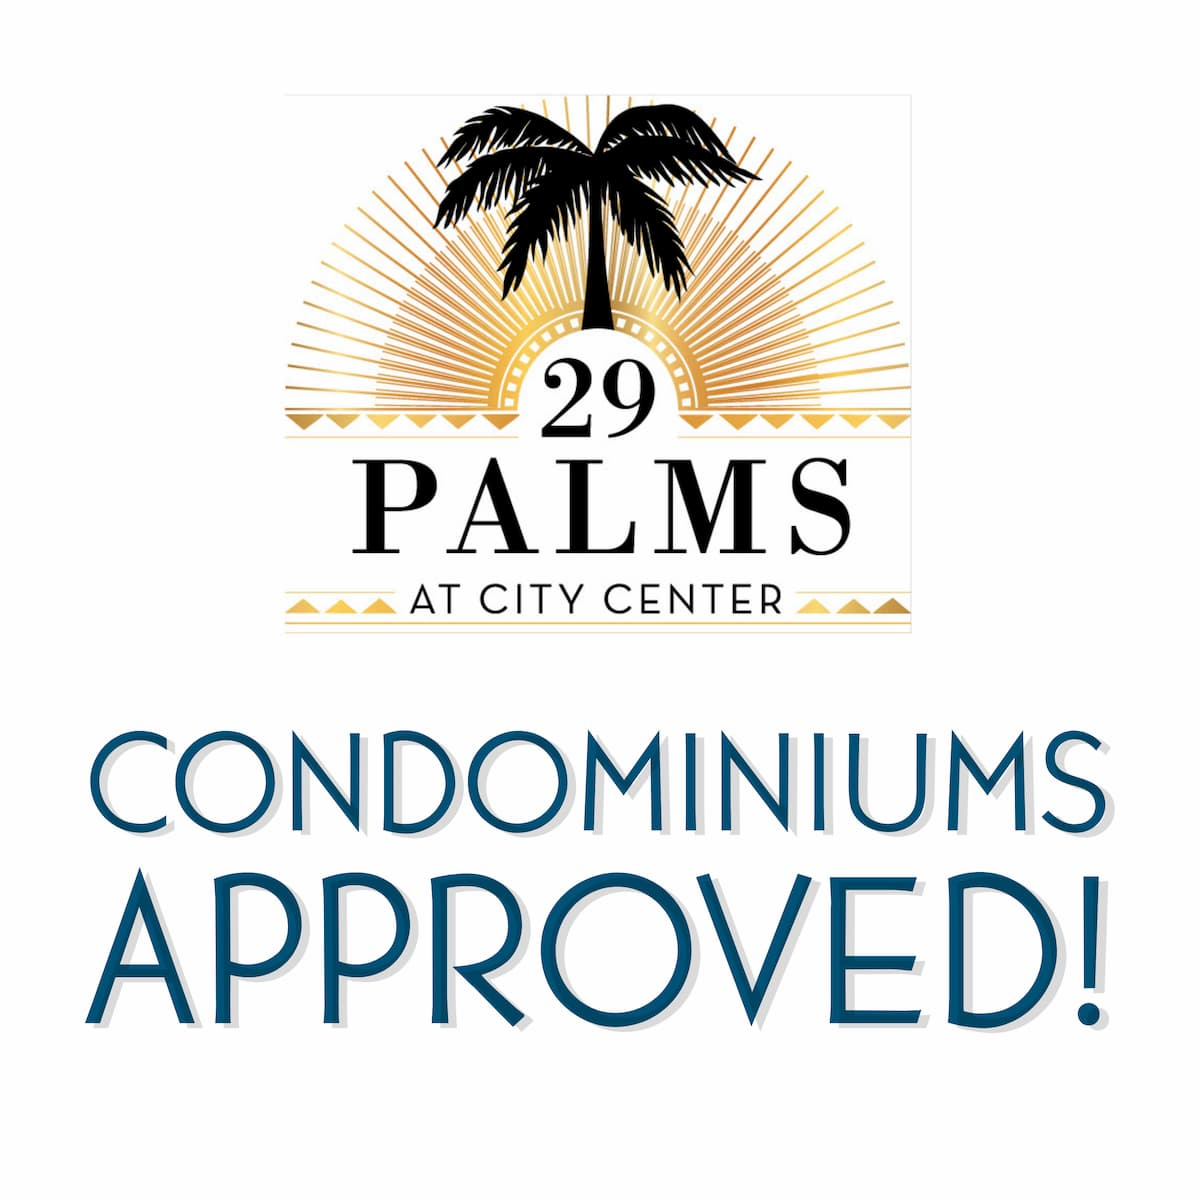 29 Palms Condos Approved!